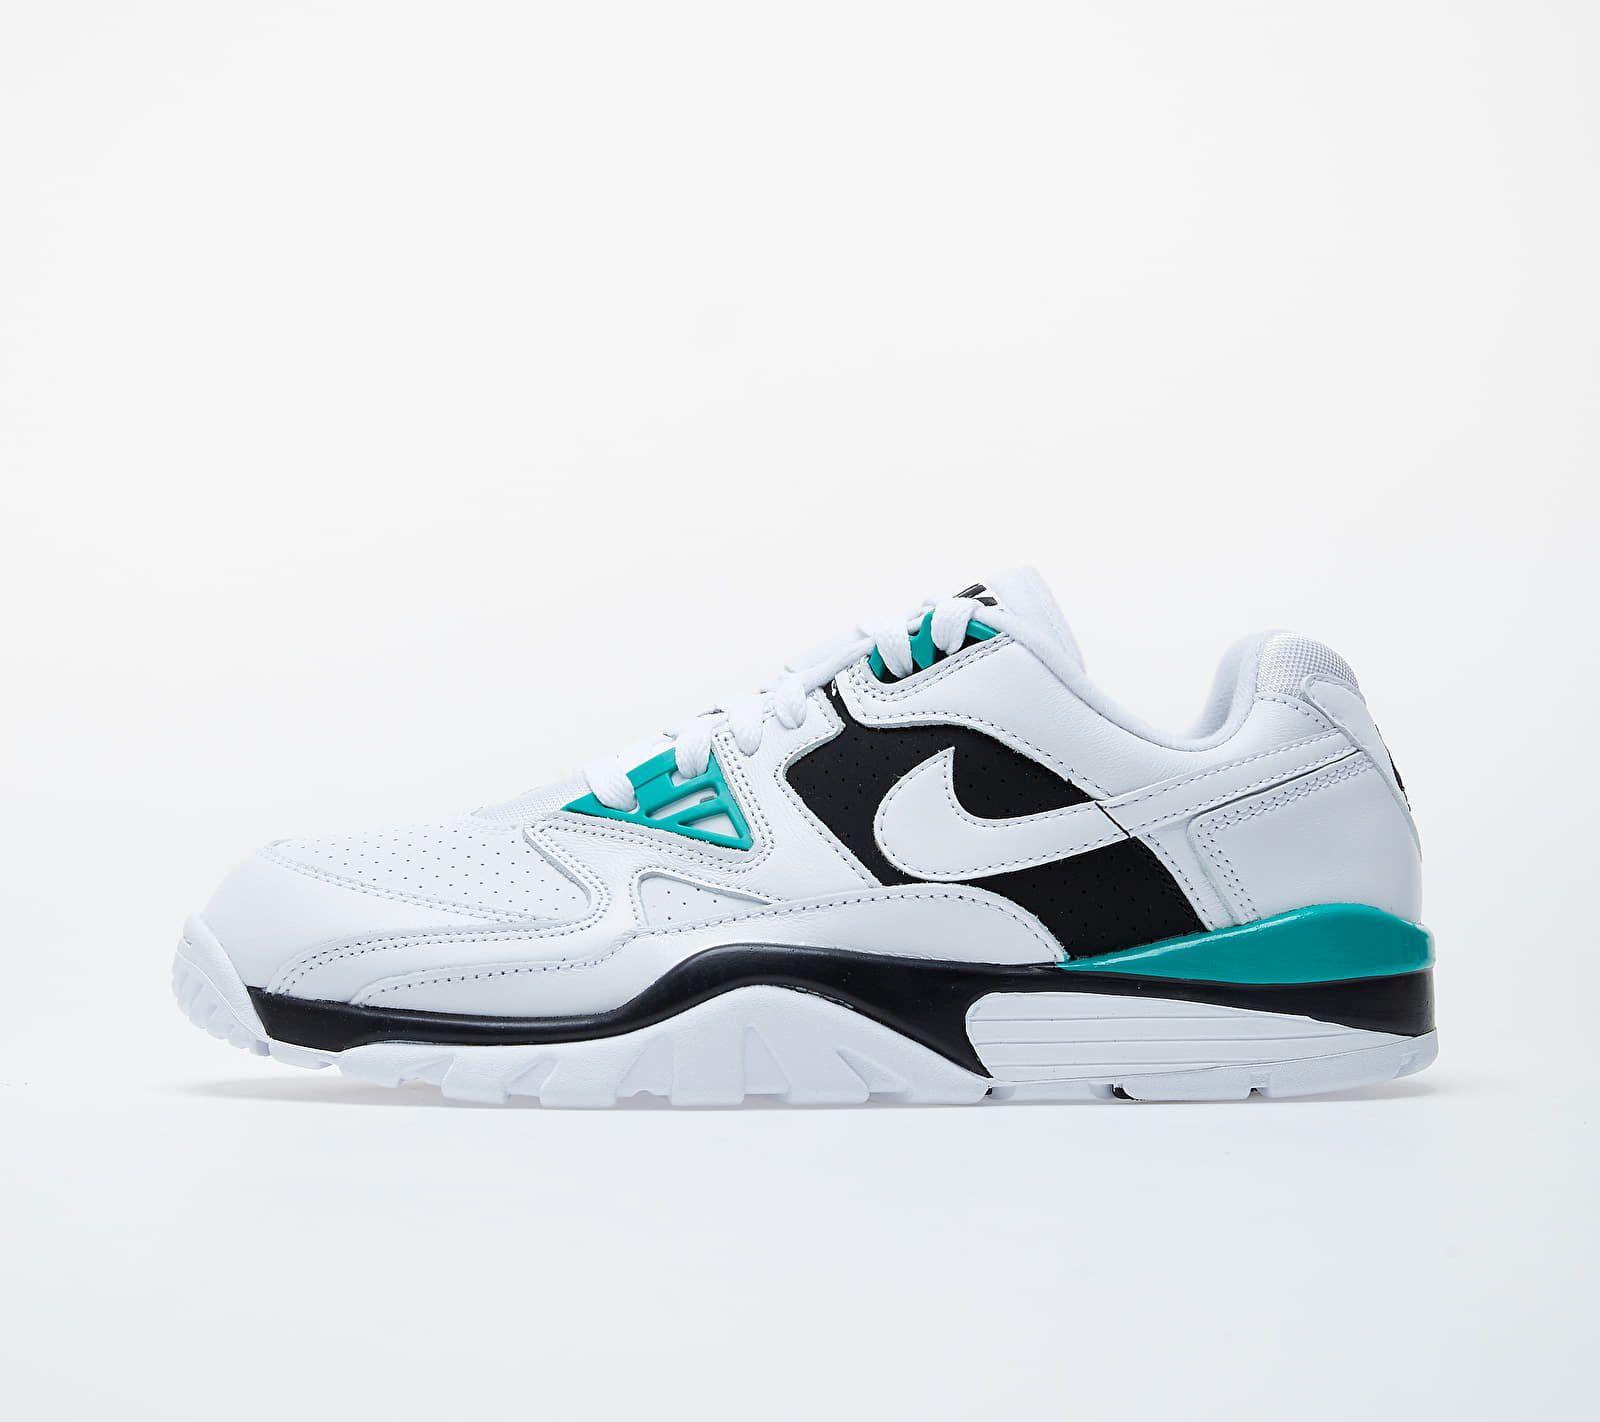 Nike Air Cross Trainer 3 Low White/ White-Neptune Green-Black EUR 45.5